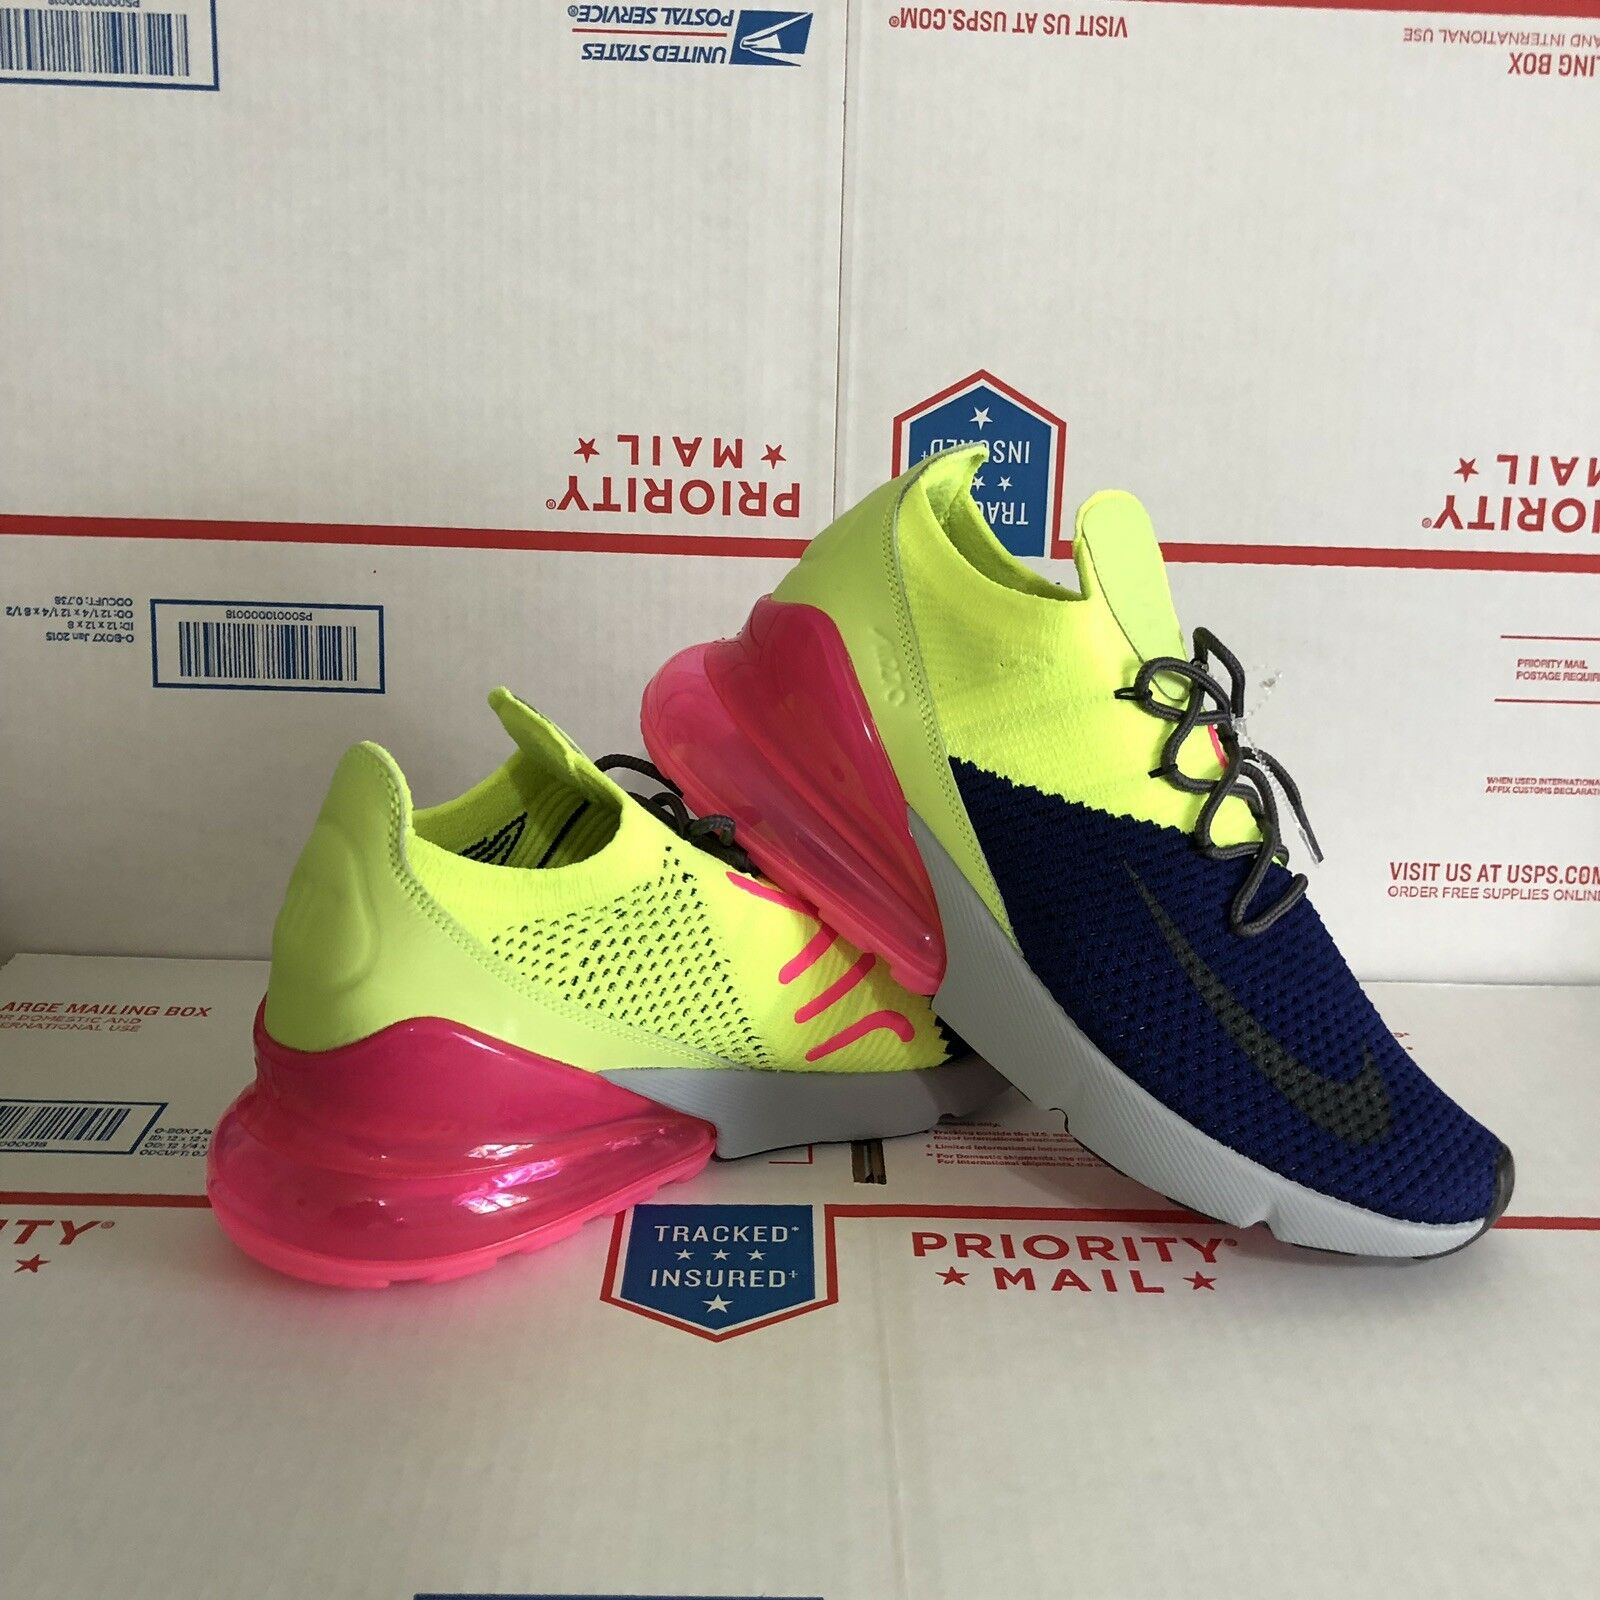 Nike Air Max 270 Flyknit Size 10 Multi-color Pink Running Gym shoes AO1023-501